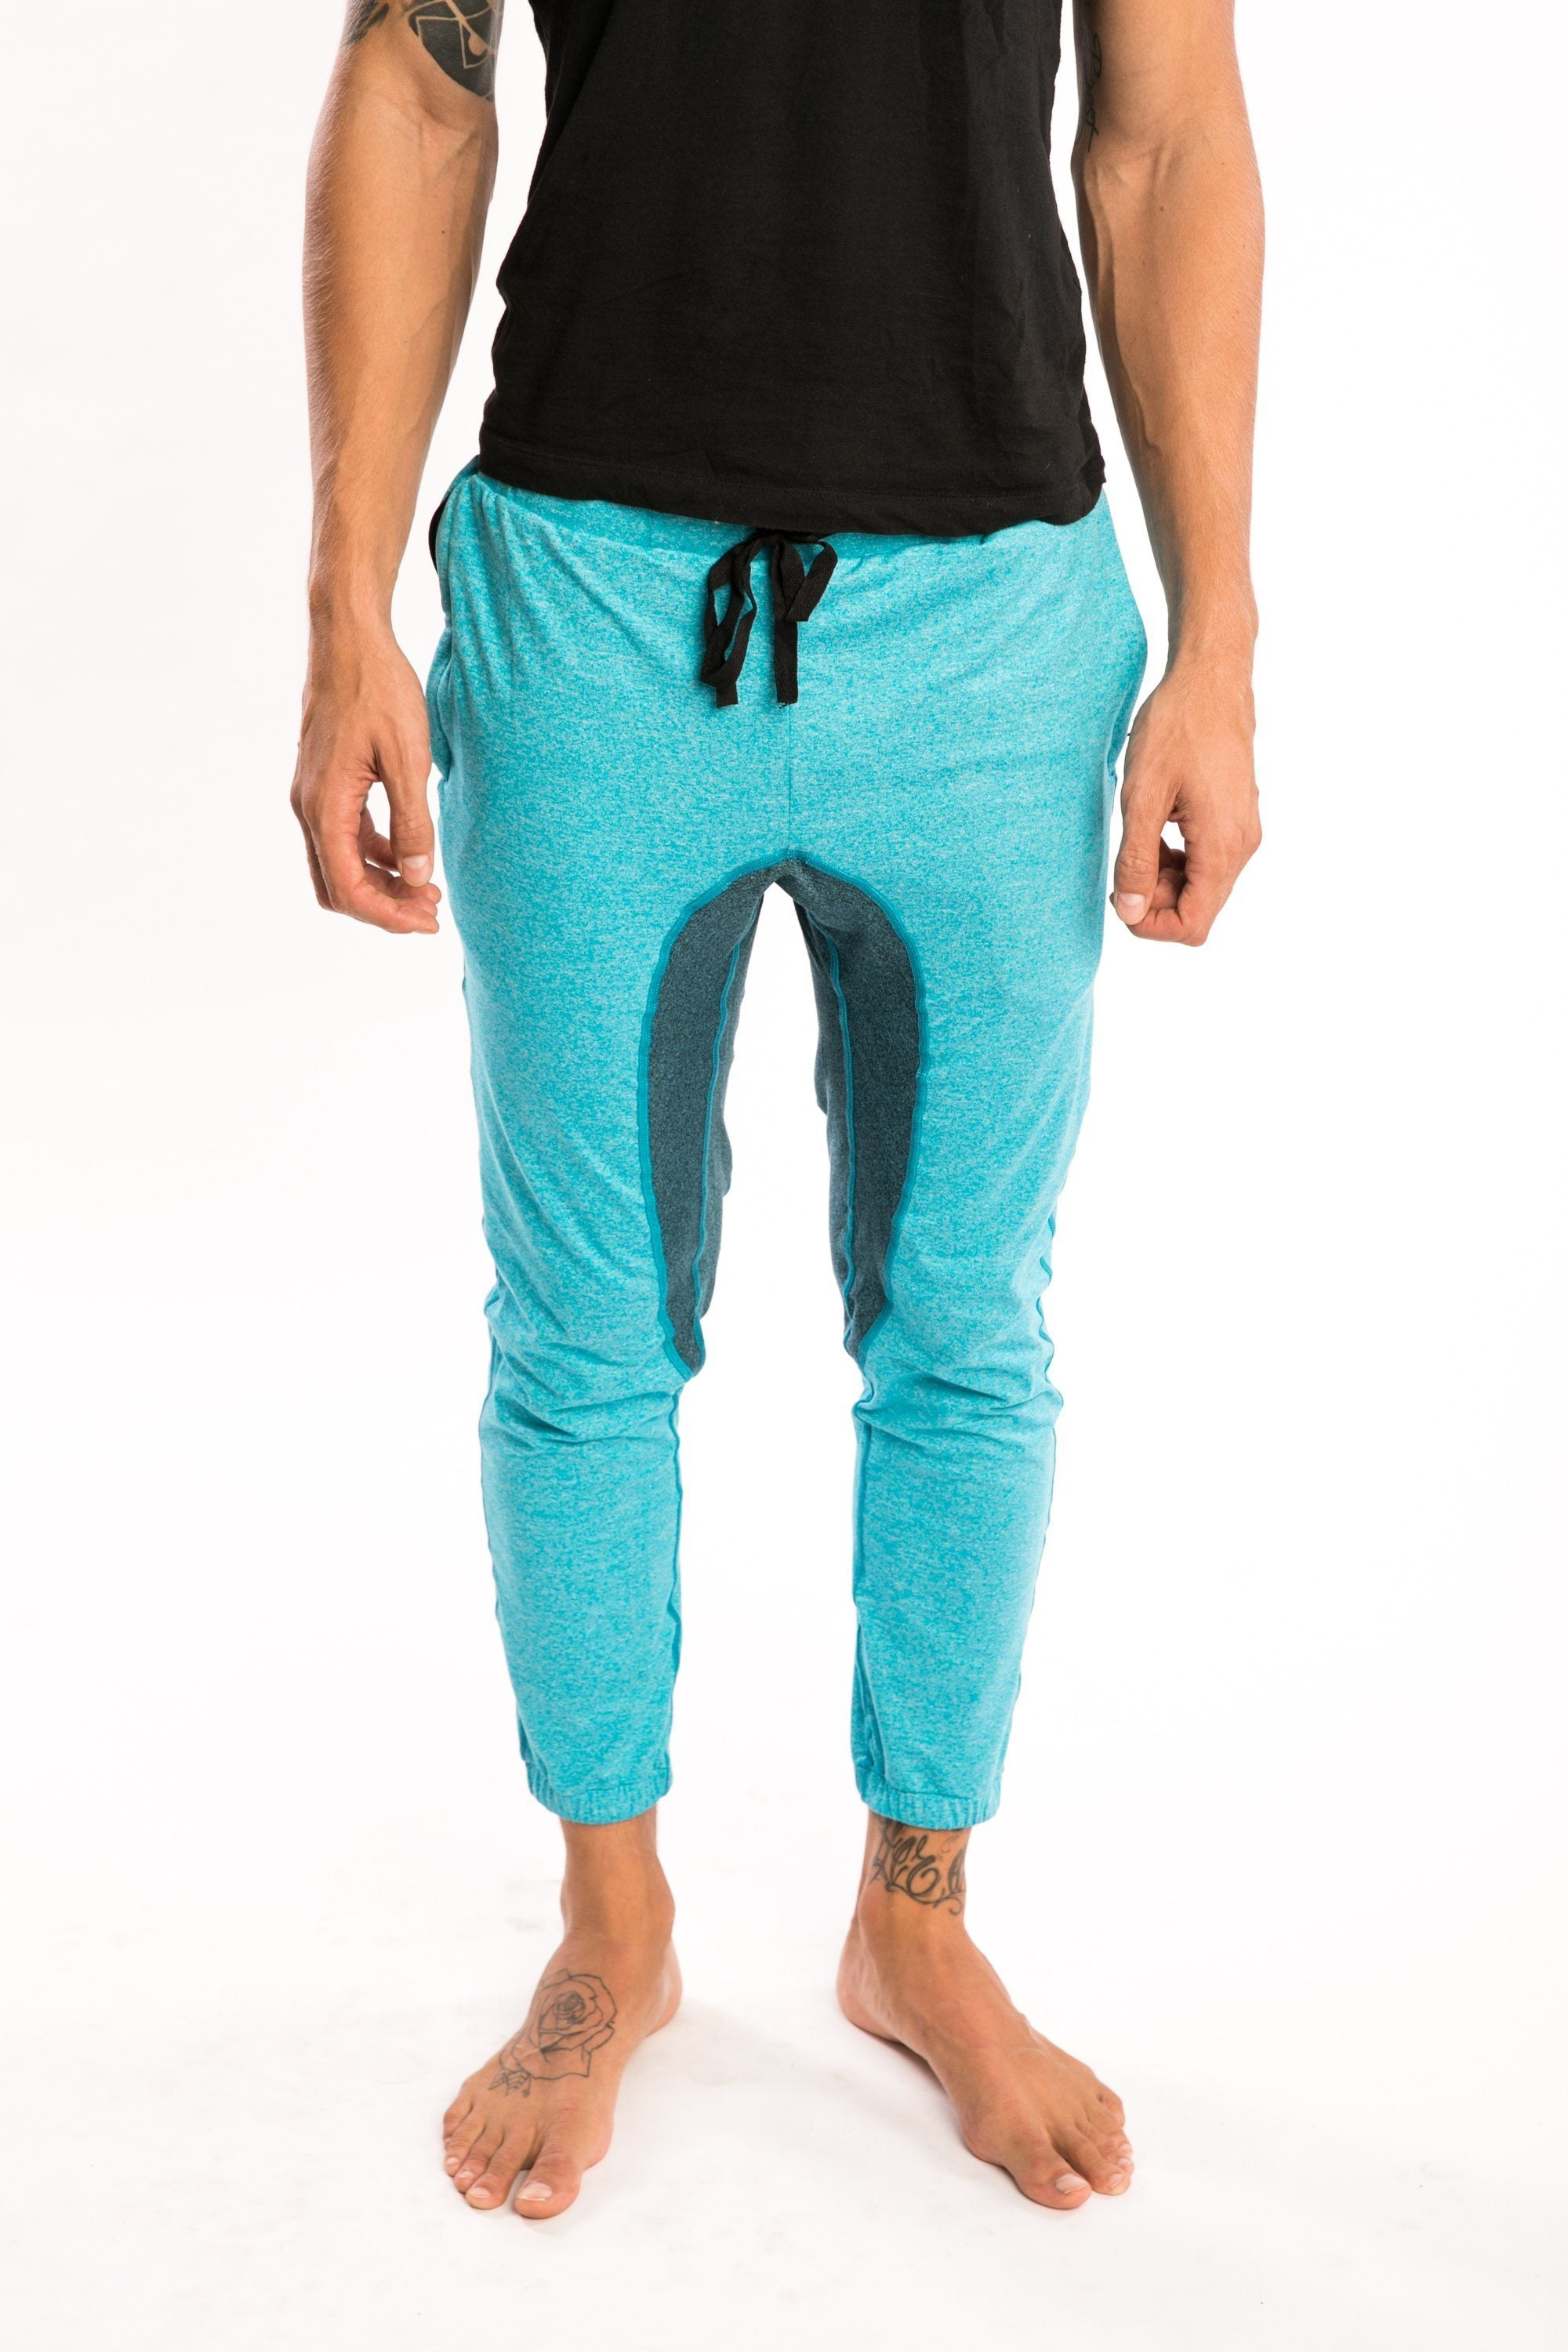 G FORCE Ninja Pant-PANTS-Pi Movement-Pi Movement